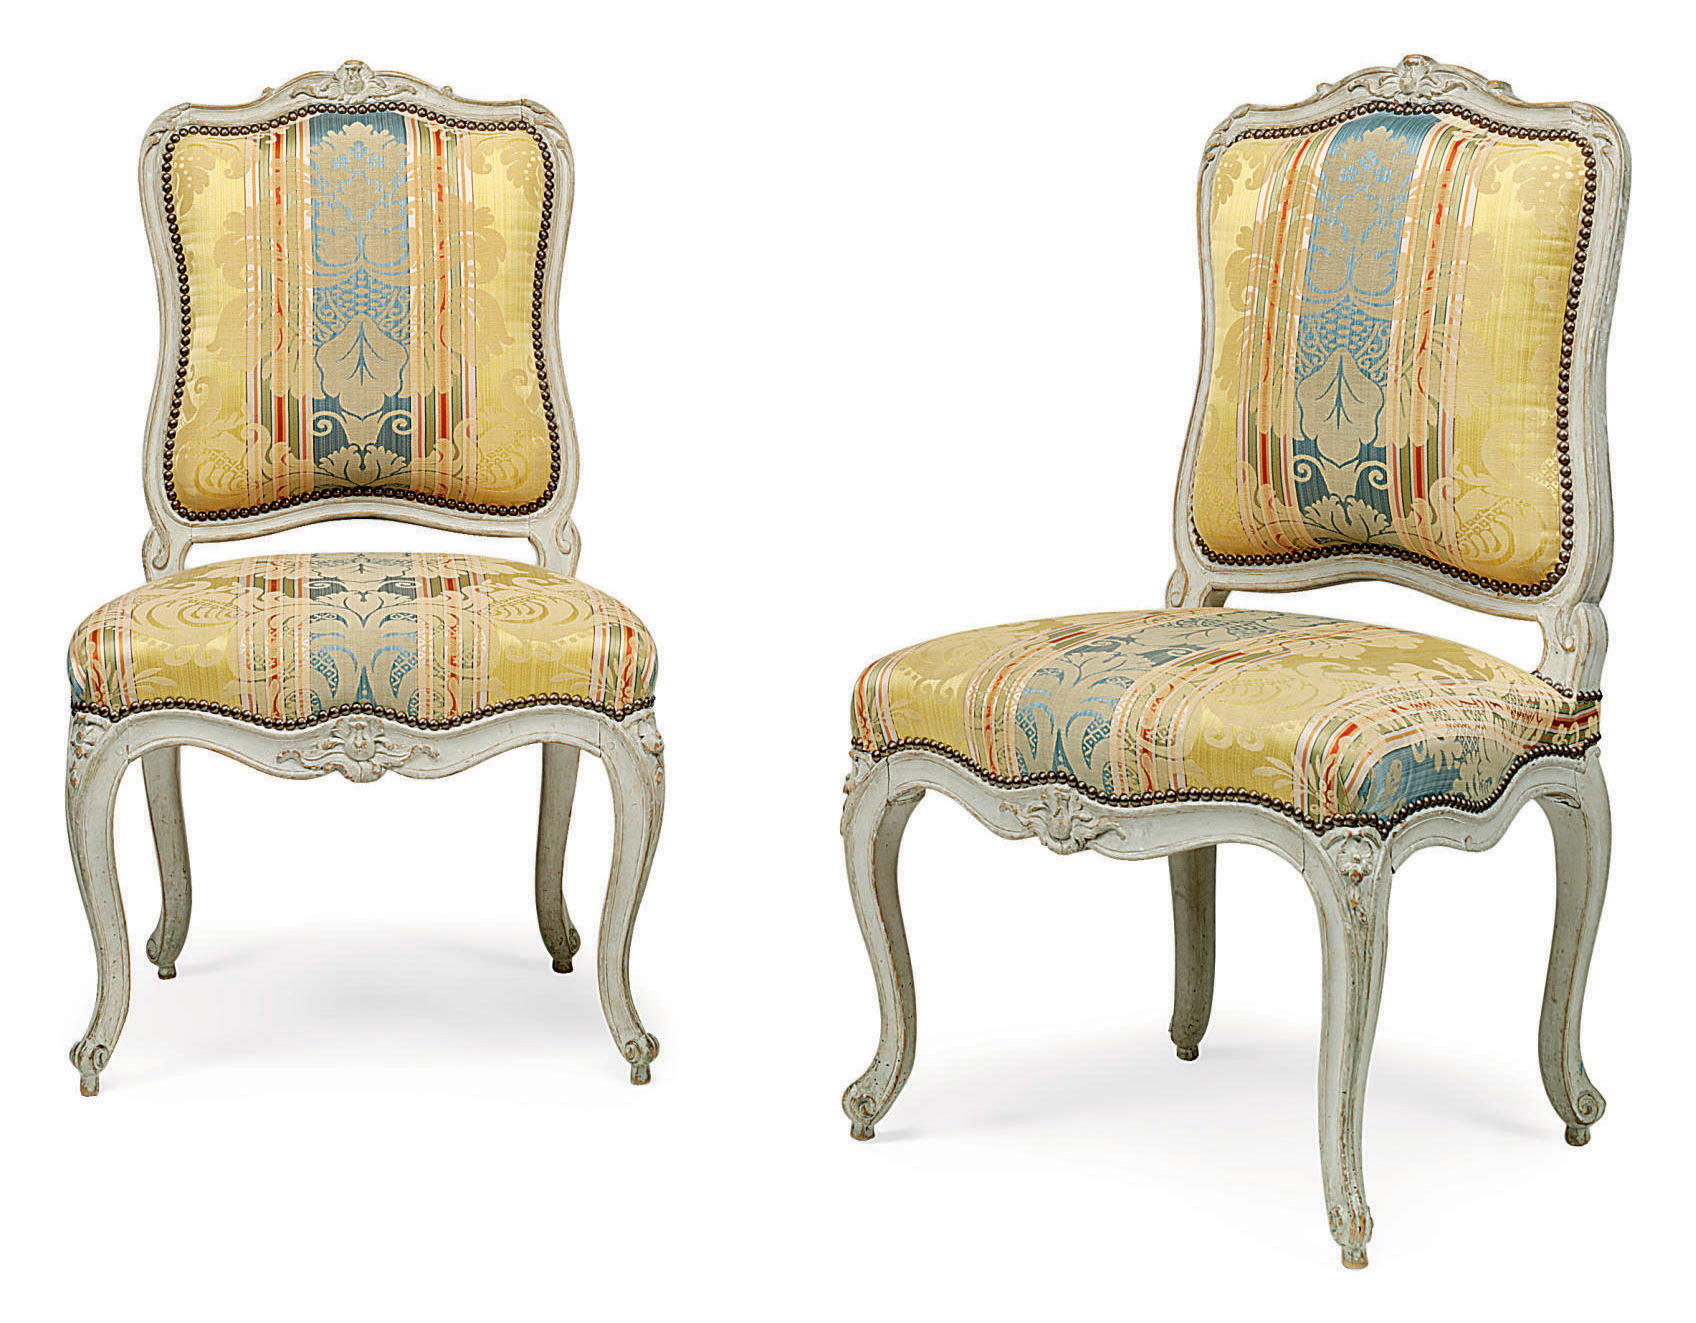 A PAIR OF LOUIS XV GREY-PAINTED CHAISES